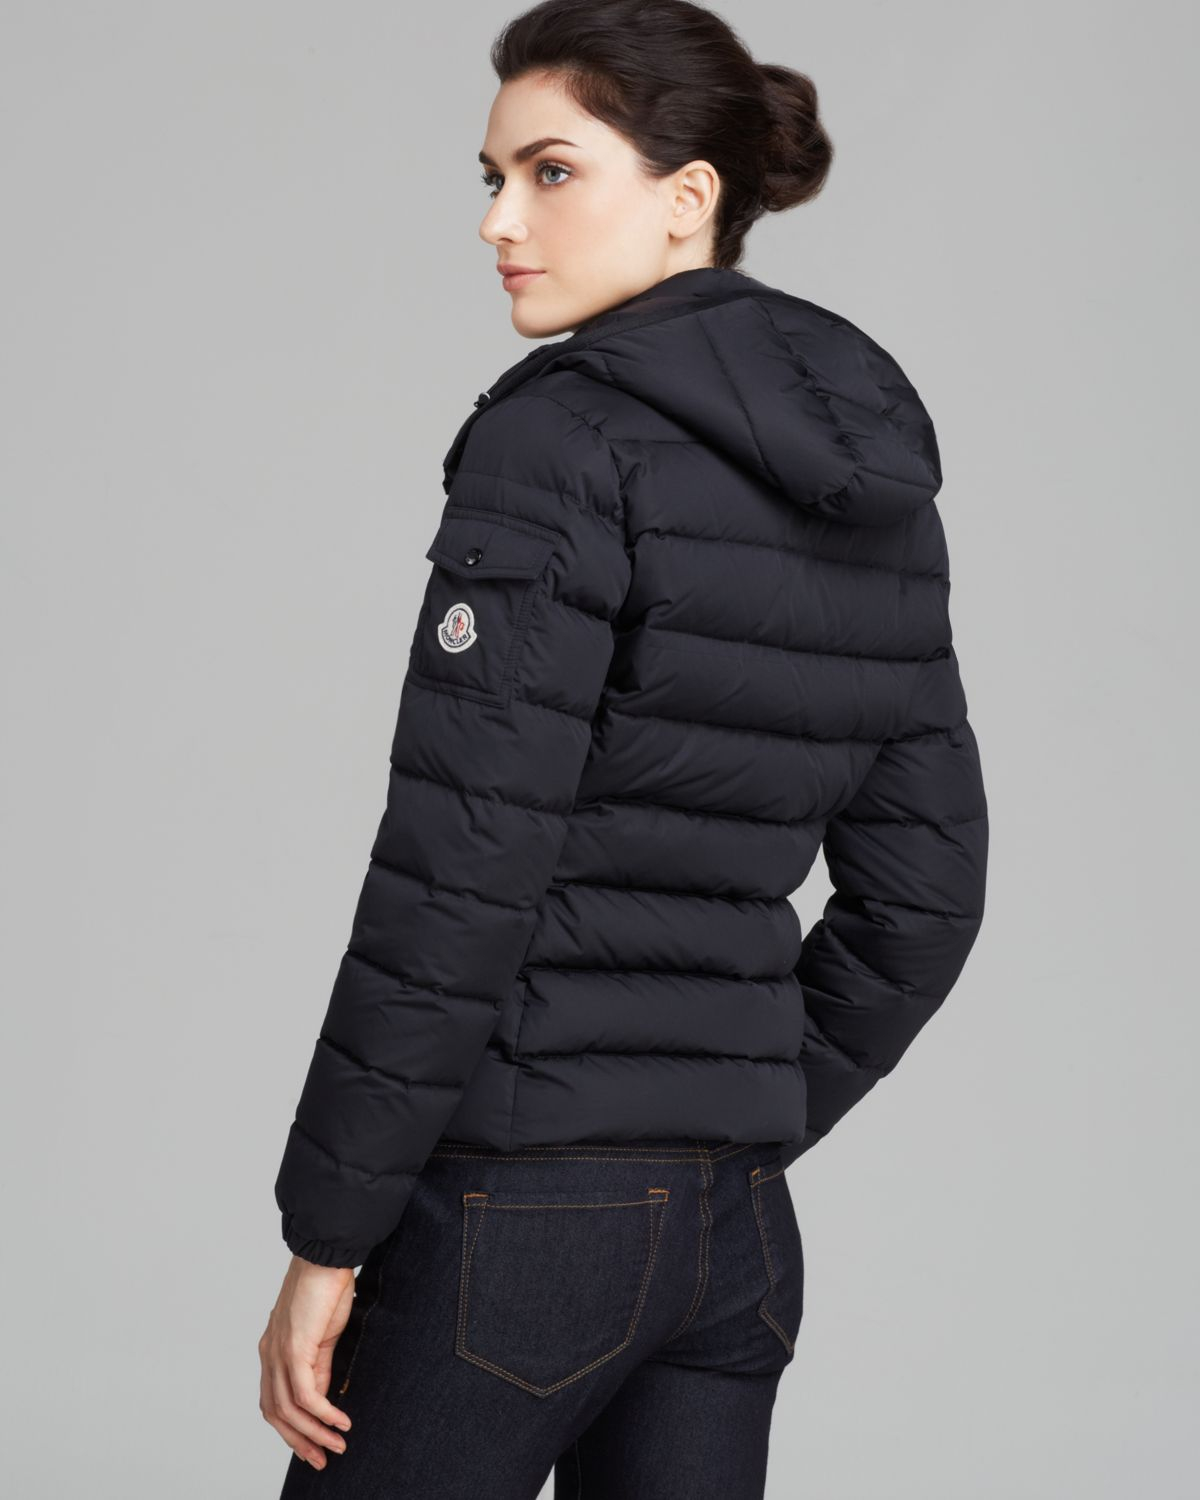 Moncler jacket women sale